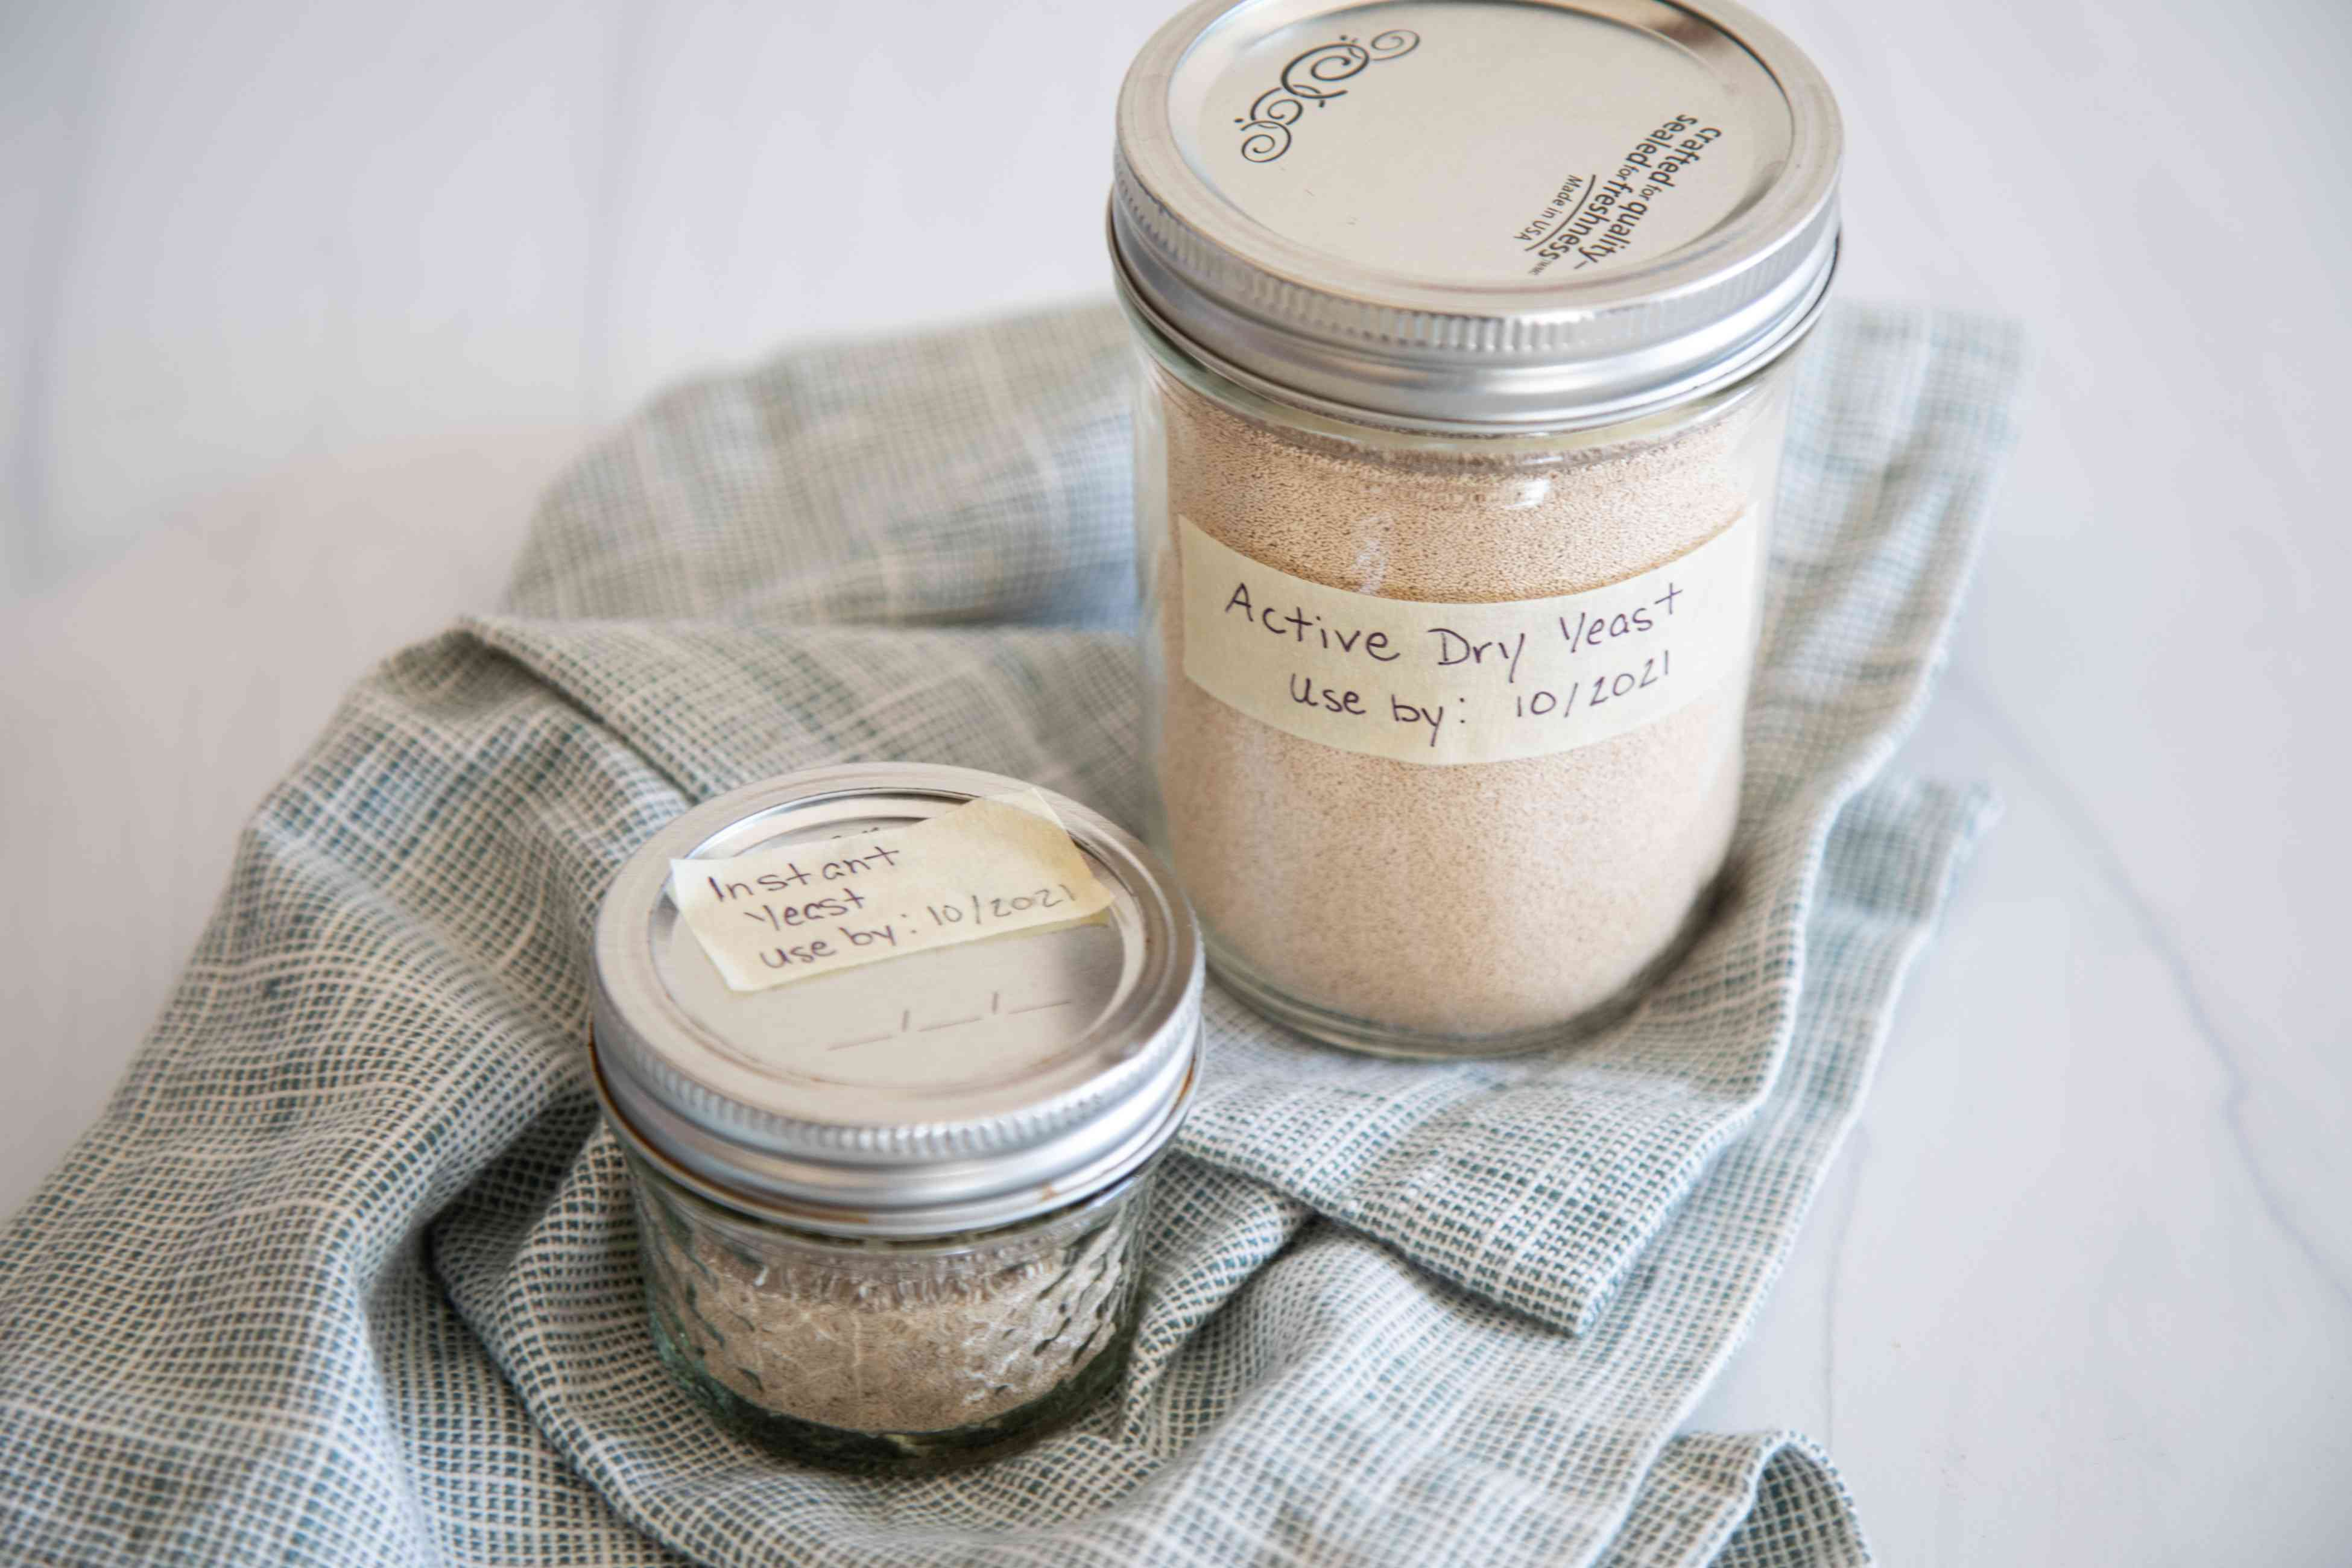 Mason jars with yeast inside set on a linen to show how to store yeast.